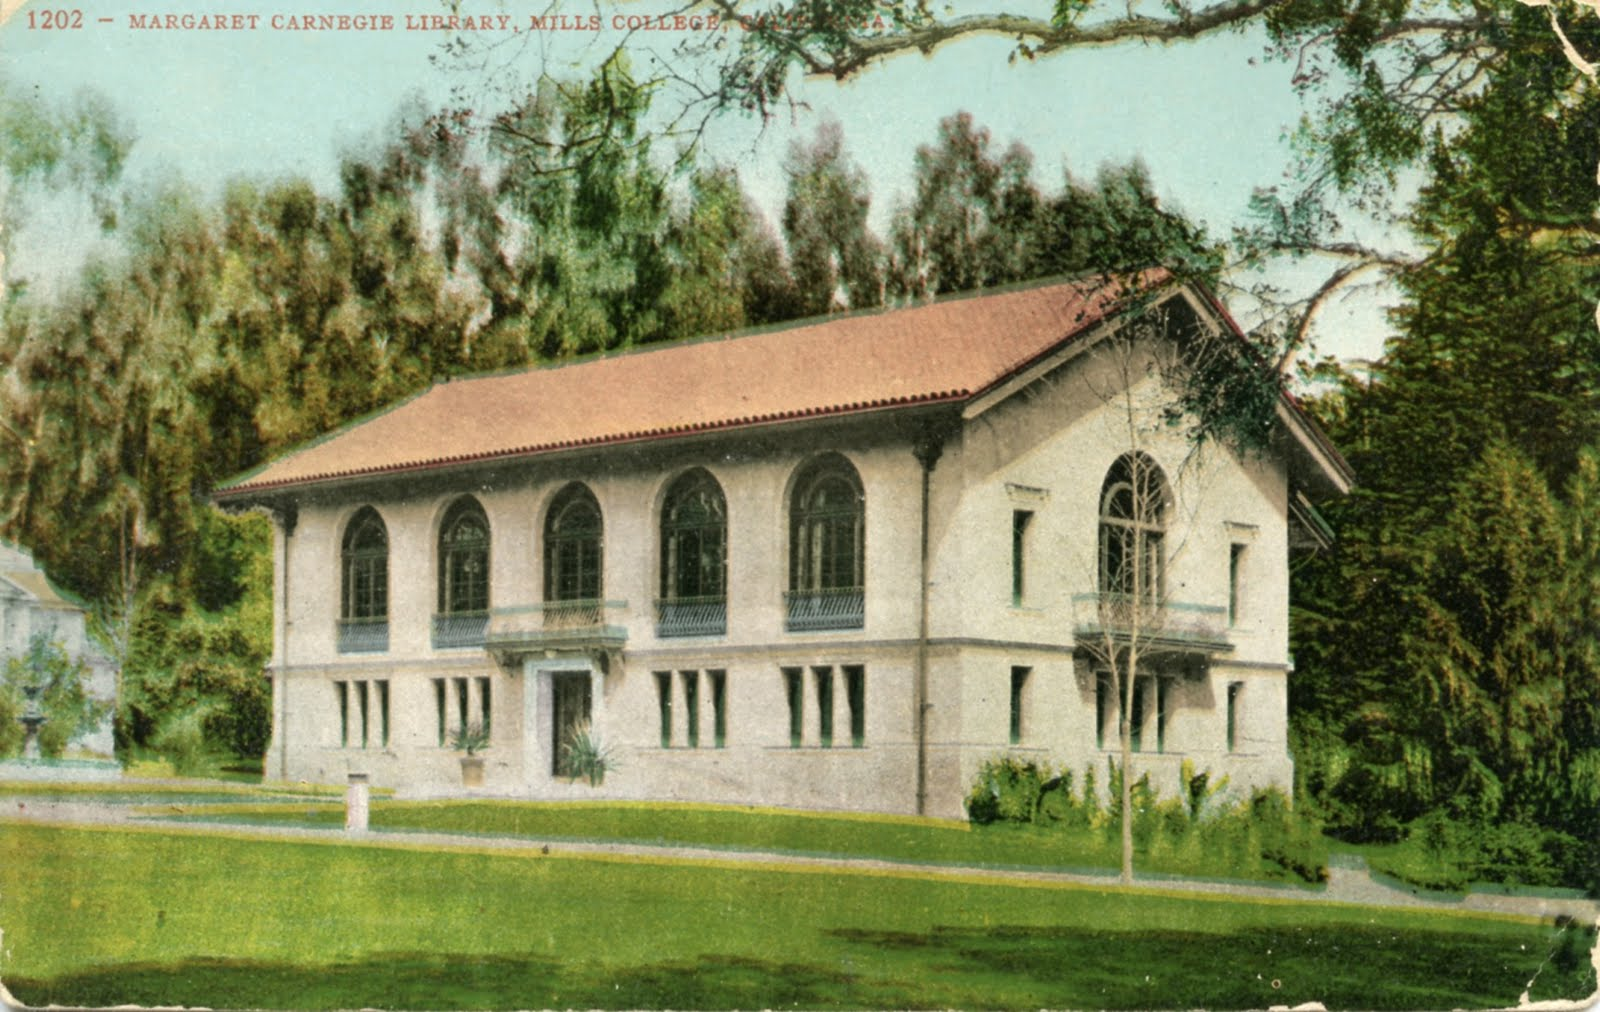 Library Postcards: 1949 Margaret Carnegie Library, Mills College ...